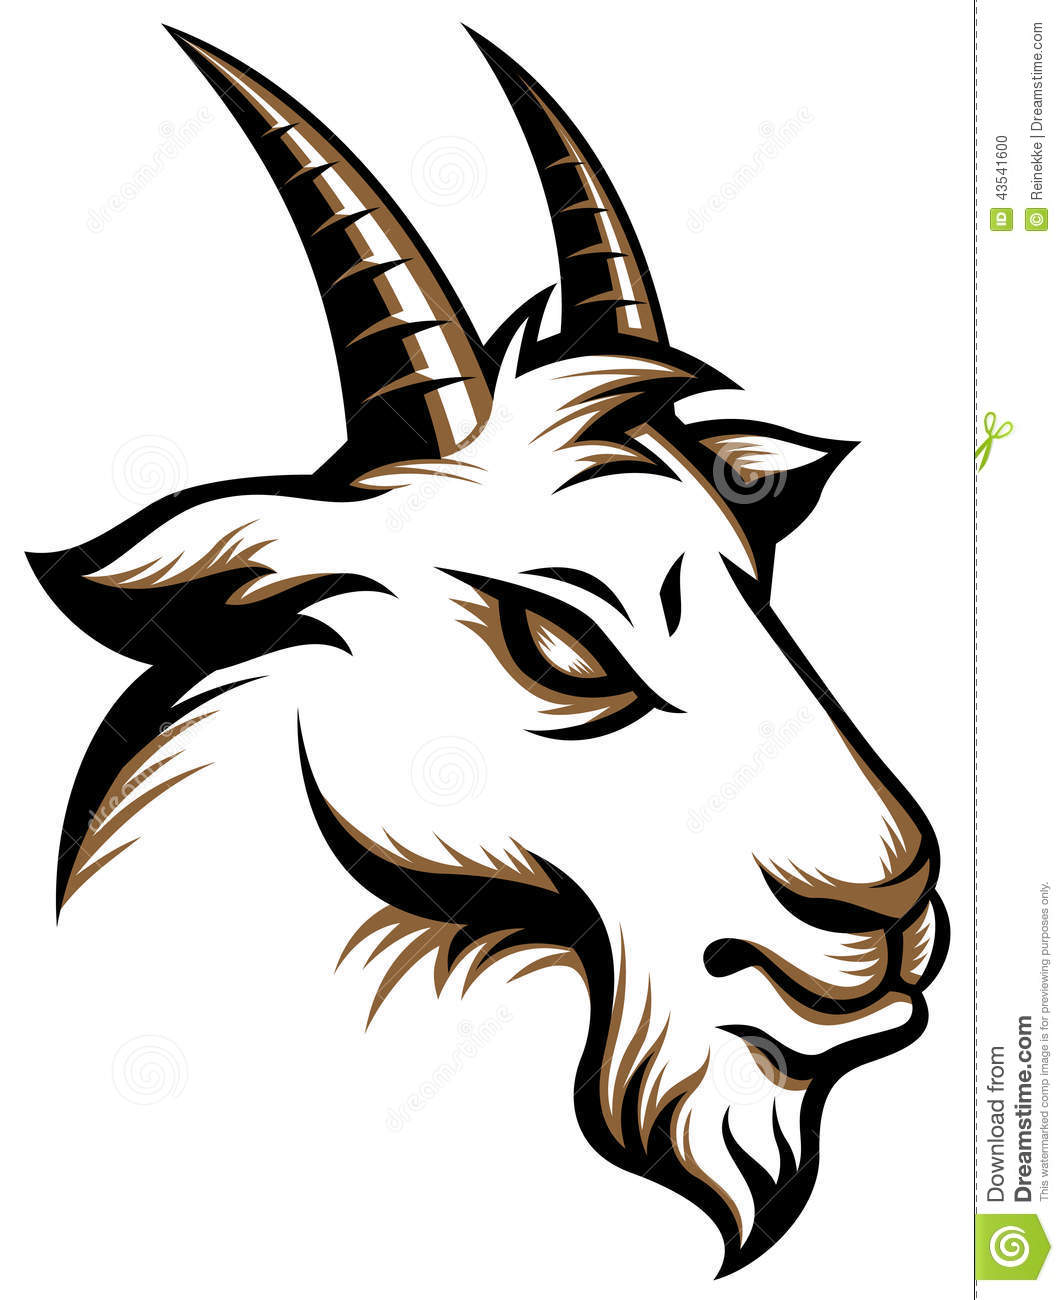 Angry Goat Stock Vector - Image: 43541600